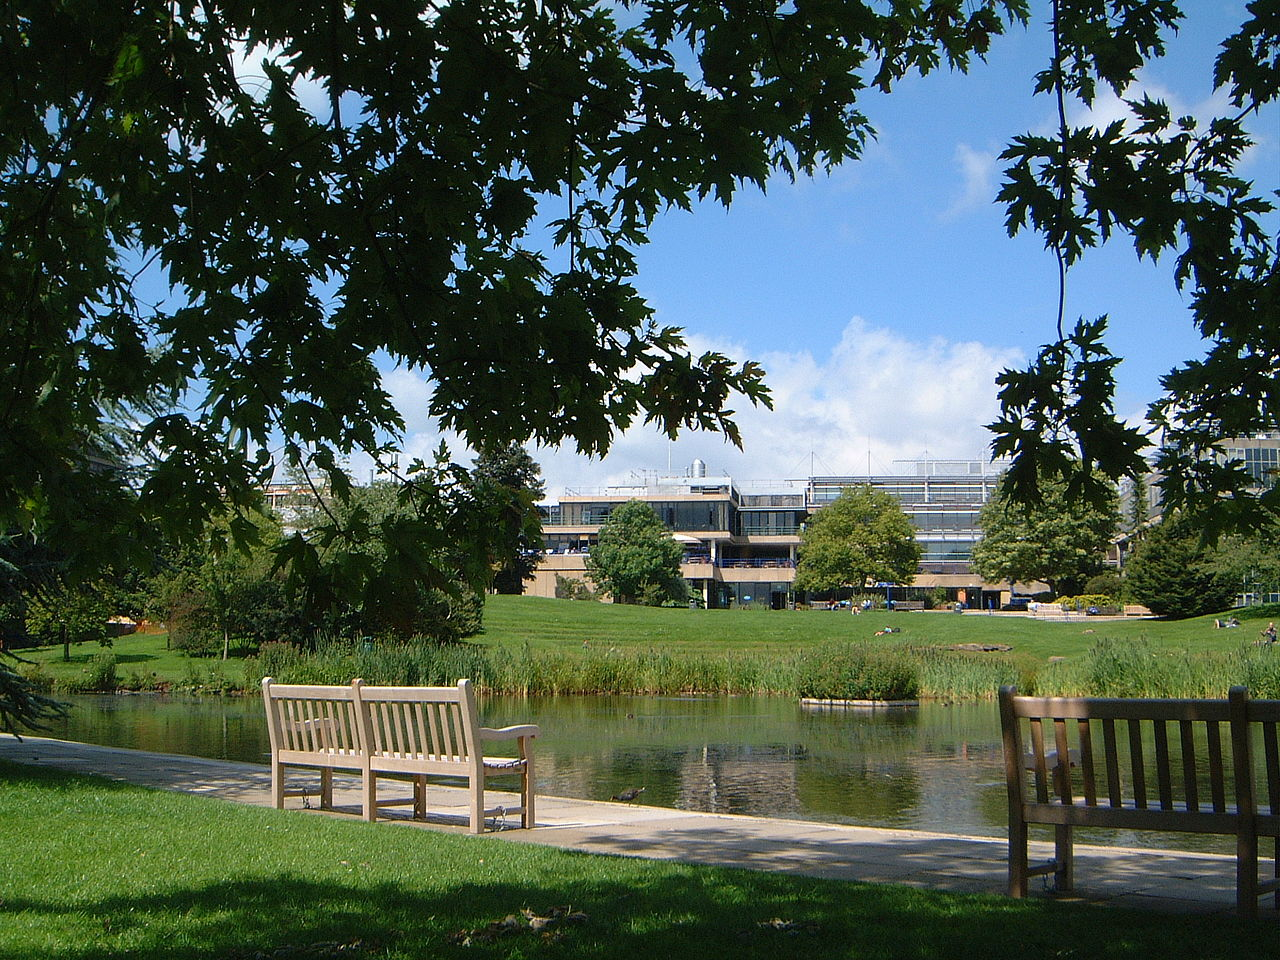 University of Bath - campus lake scene